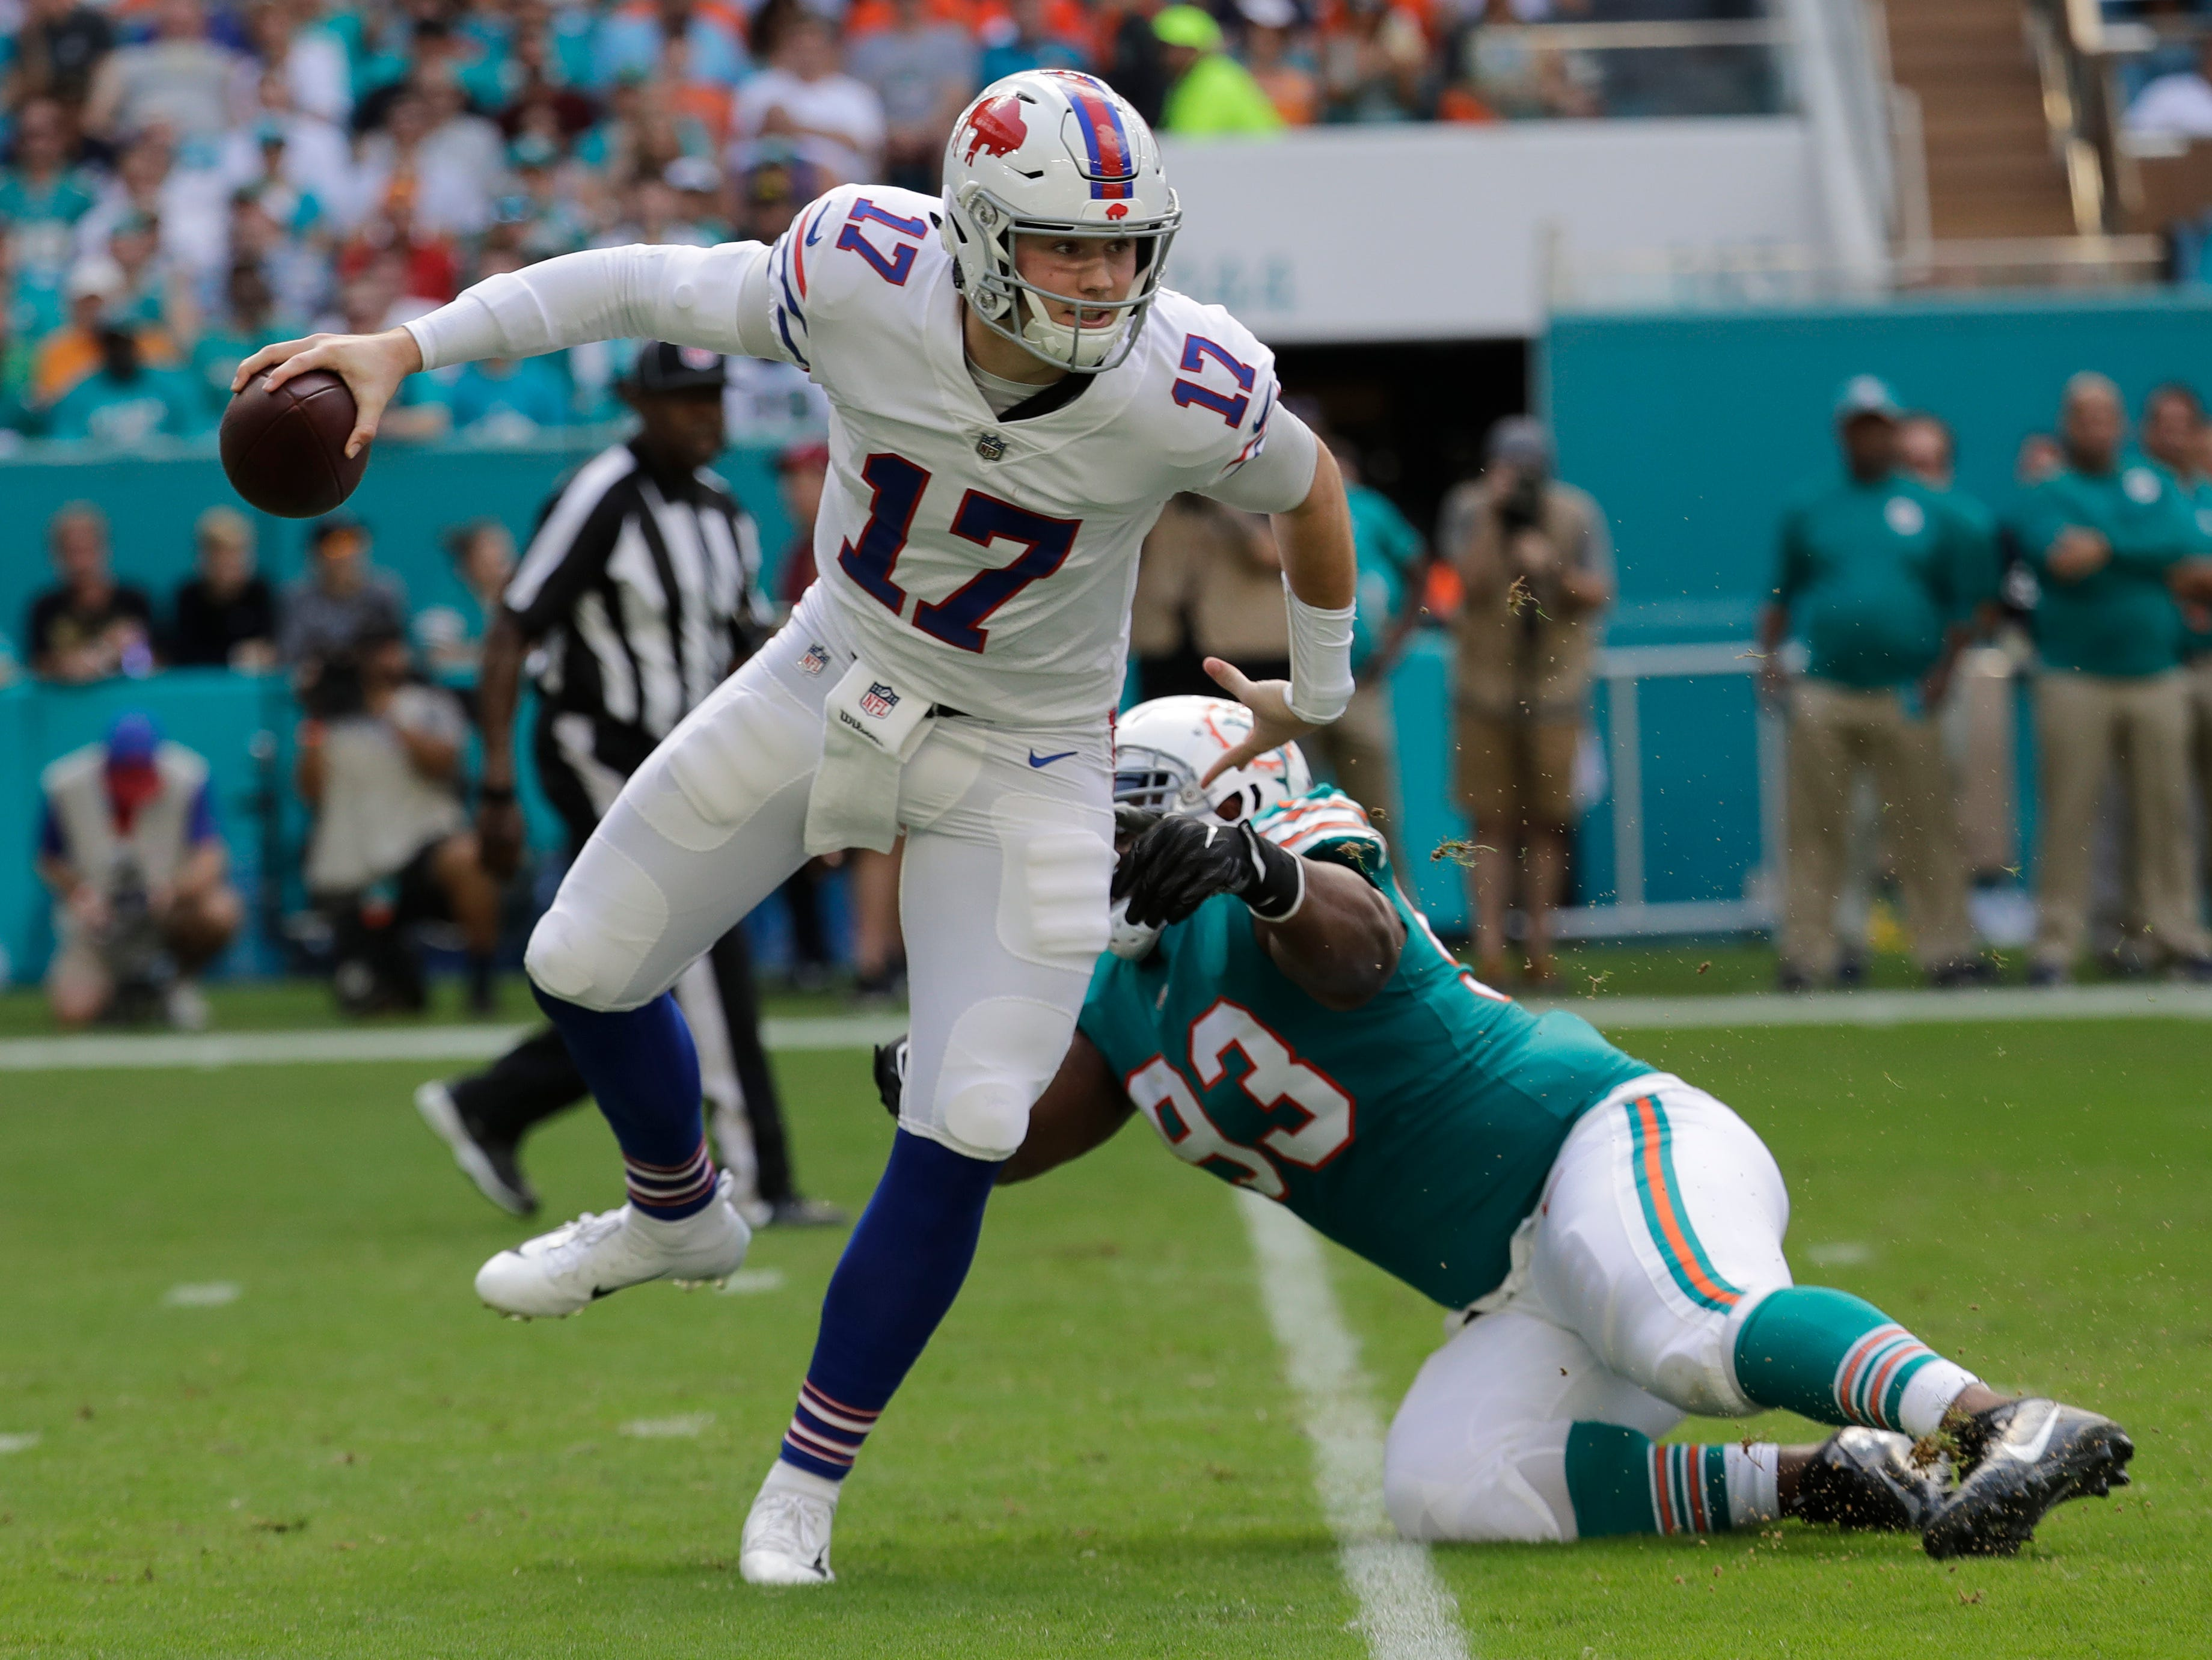 Buffalo Bills quarterback Josh Allen (17) avoids a tackle by Miami Dolphins defensive tackle Akeem Spence (93), during the first half of an NFL football game, Sunday, Dec. 2, 2018, in Miami Gardens, Fla. (AP Photo/Lynne Sladky)